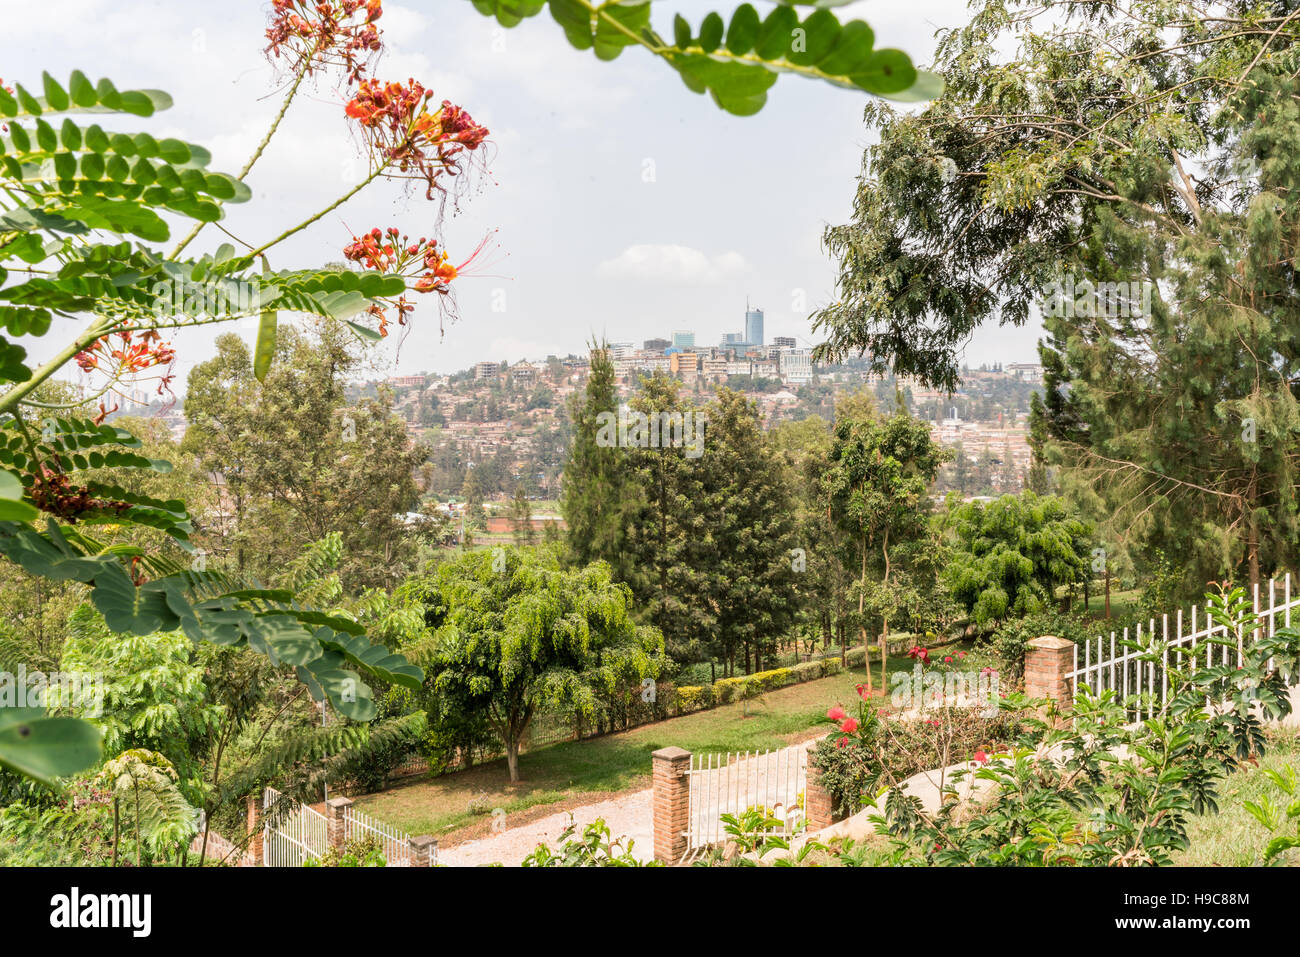 Aerial view of the Kigali, the capita city of Rwanda, from the hills on the outskirt of the city - Stock Image